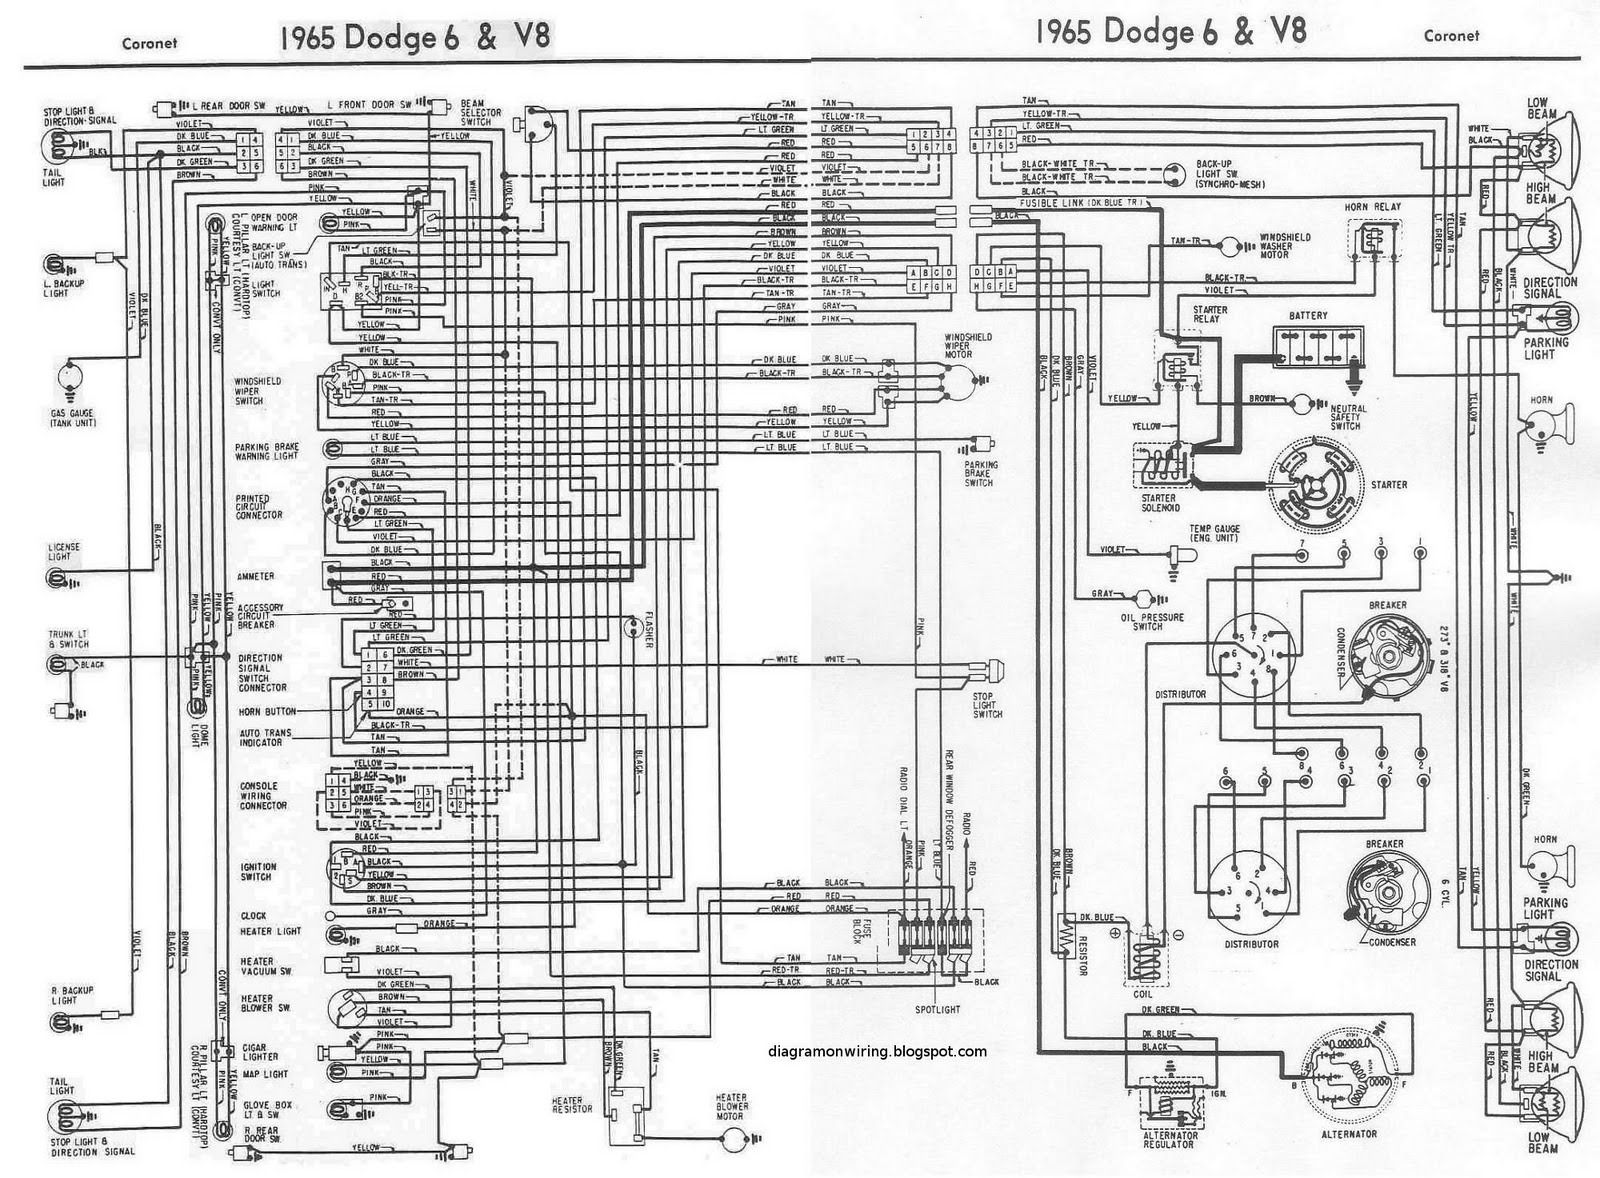 Diagram 1970 Dodge Coronet Wiring Diagram Full Version Hd Quality Wiring Diagram Skematik110isi Gsdportotorres It